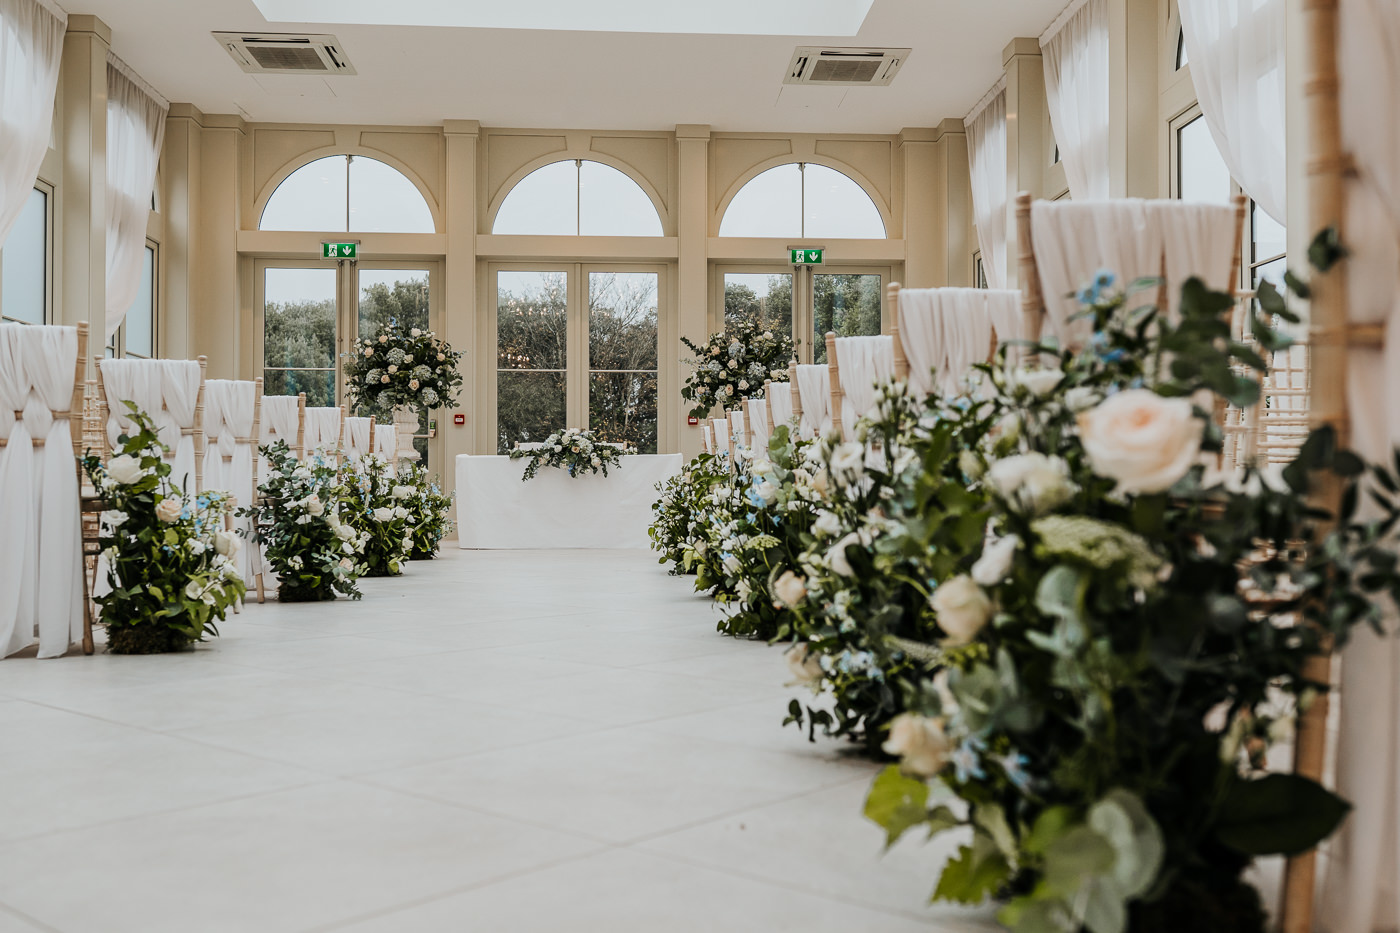 Daisy Lane Floral Design Meadow Arrangements Orangery wedding ceremony